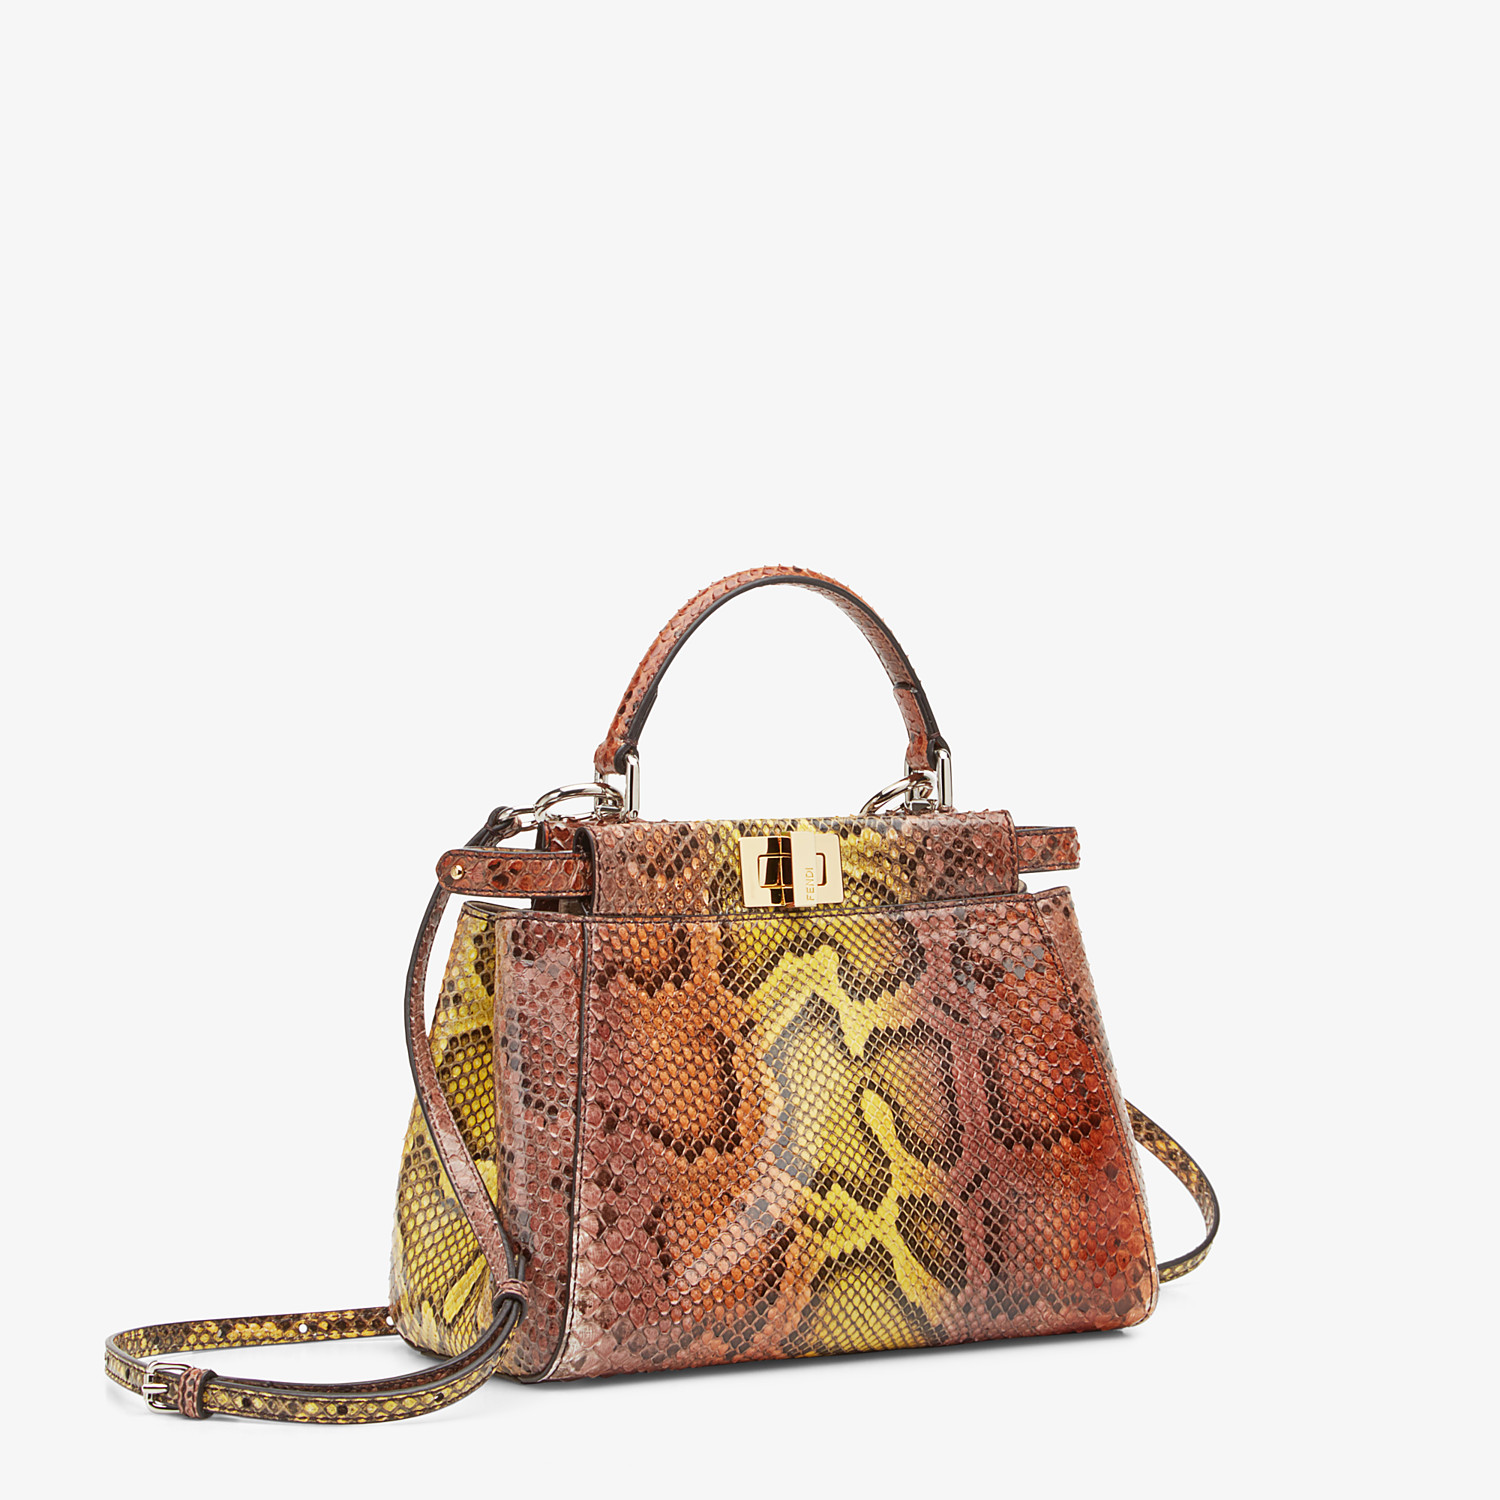 FENDI PEEKABOO ICONIC MINI - Borsa in pitone marrone - vista 2 dettaglio